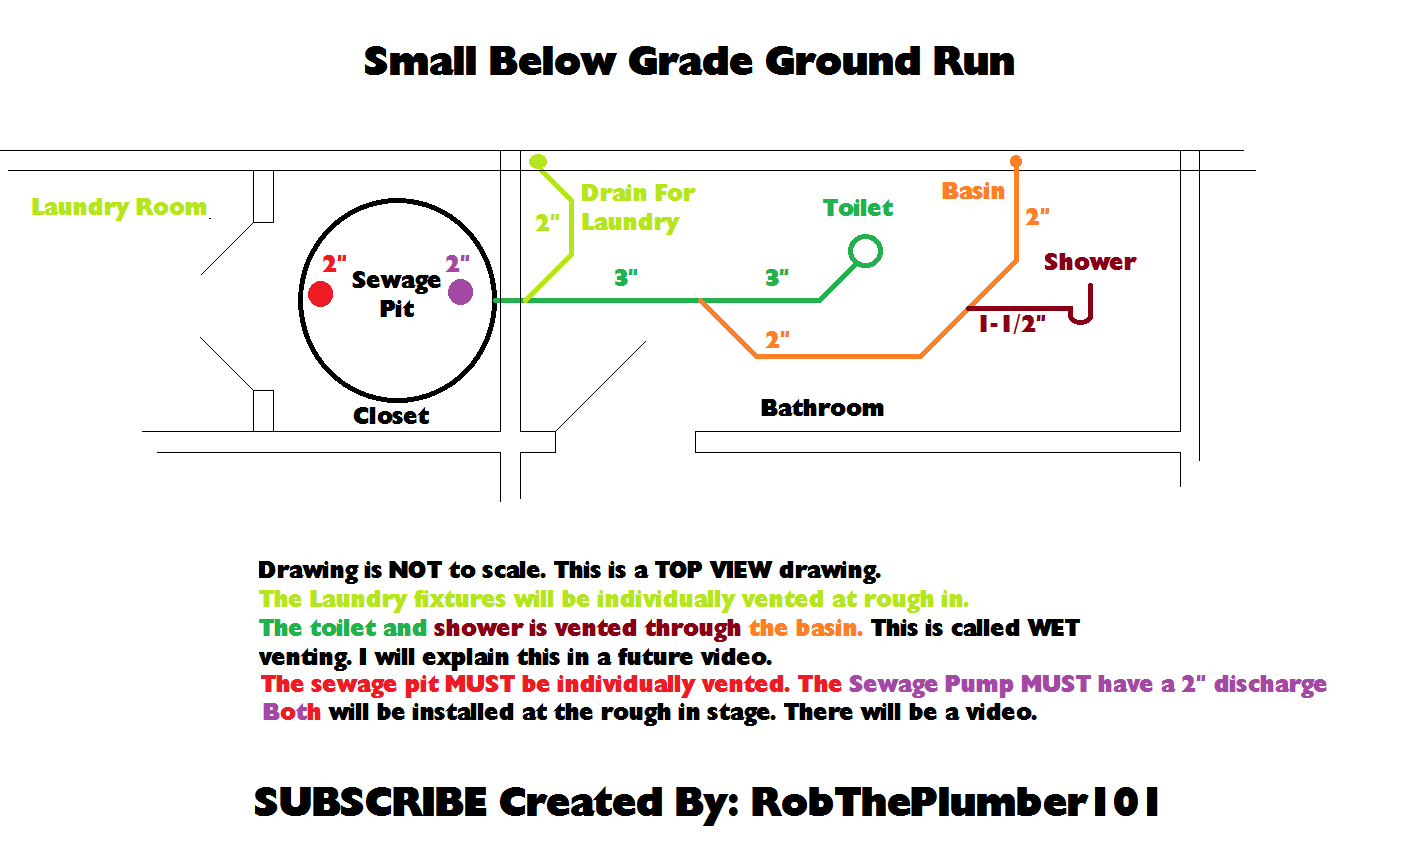 Small Below Grade Ground Run With Installing Basement Toilet Plumbing  Diagrams For Closet And Bathroom